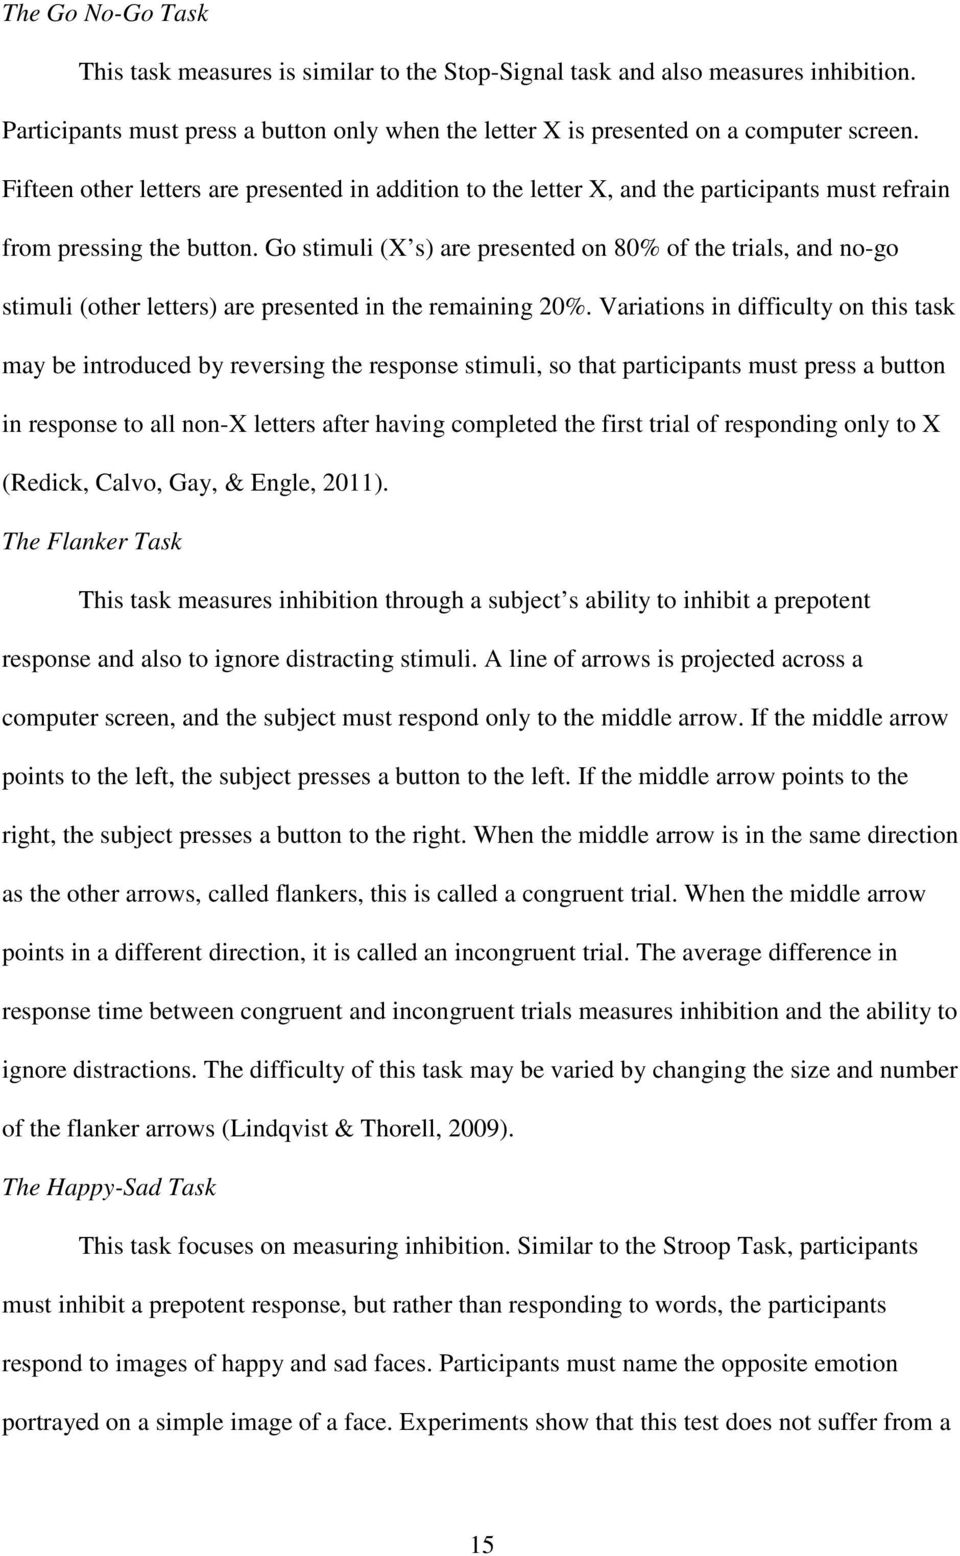 Go stimuli (X s) are presented on 80% of the trials, and no-go stimuli (other letters) are presented in the remaining 20%.